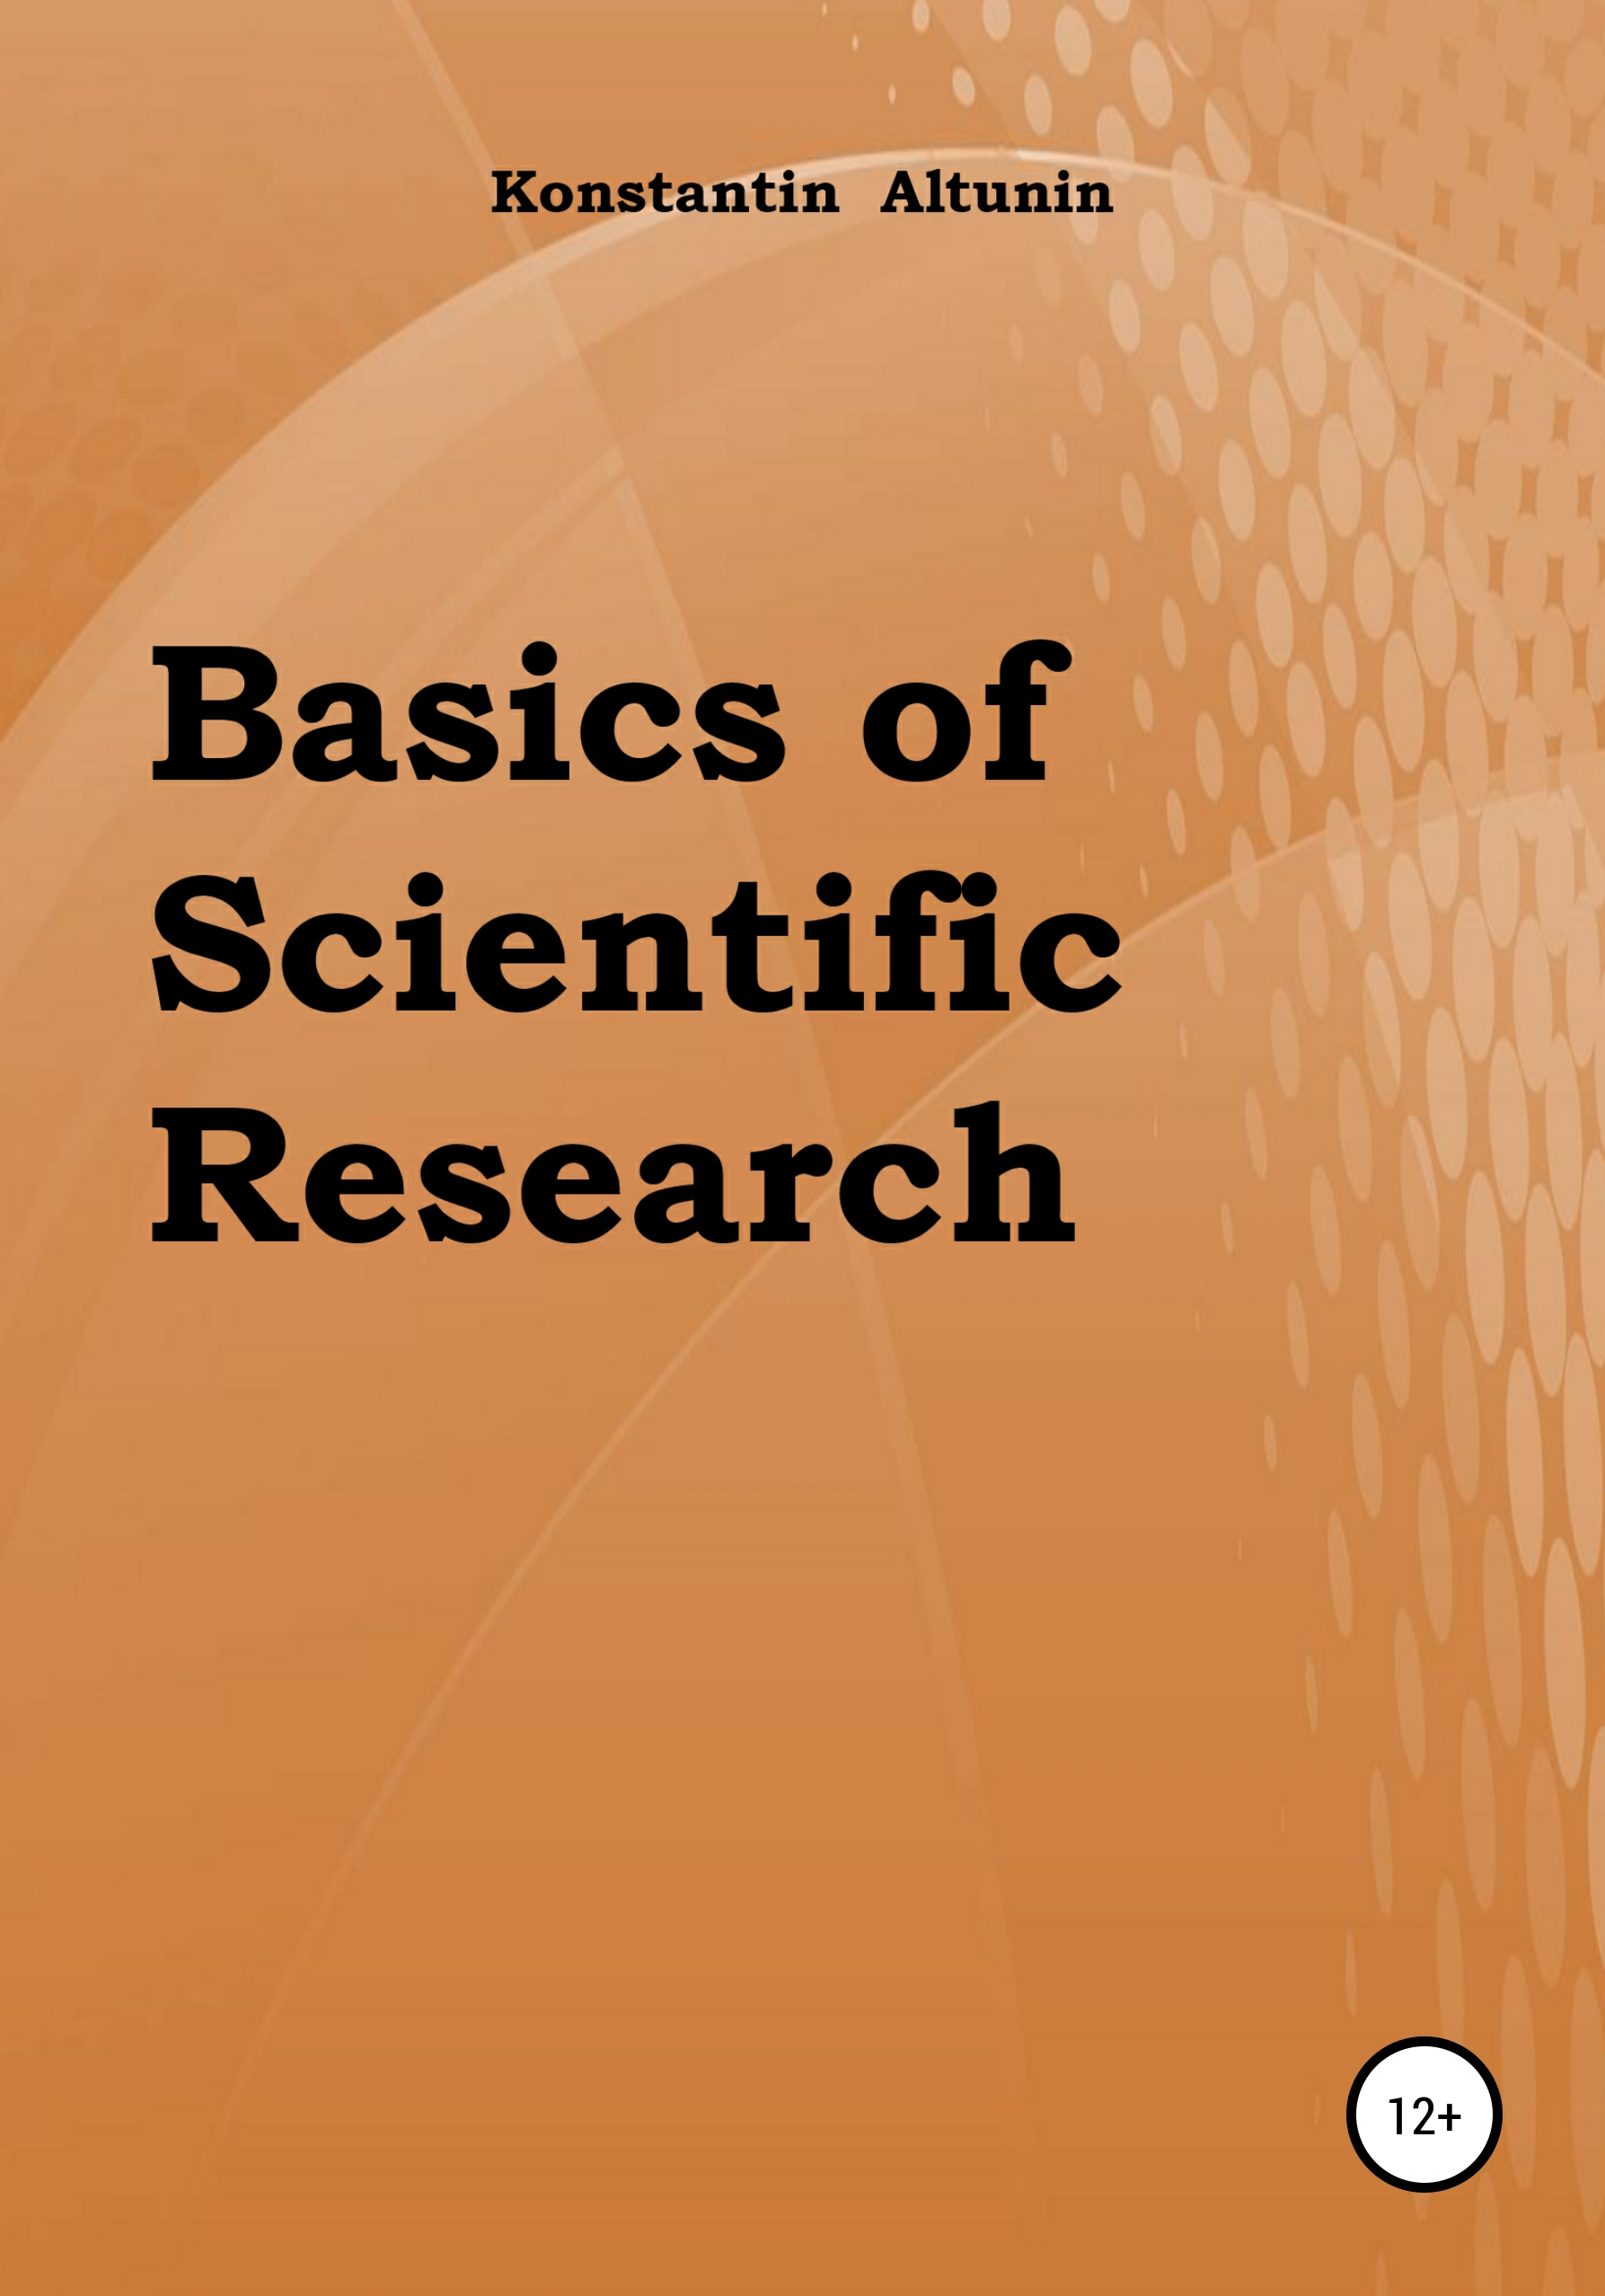 Константин Алтунин Basics of Scientific Research leonard jones how fu k d up would it be if